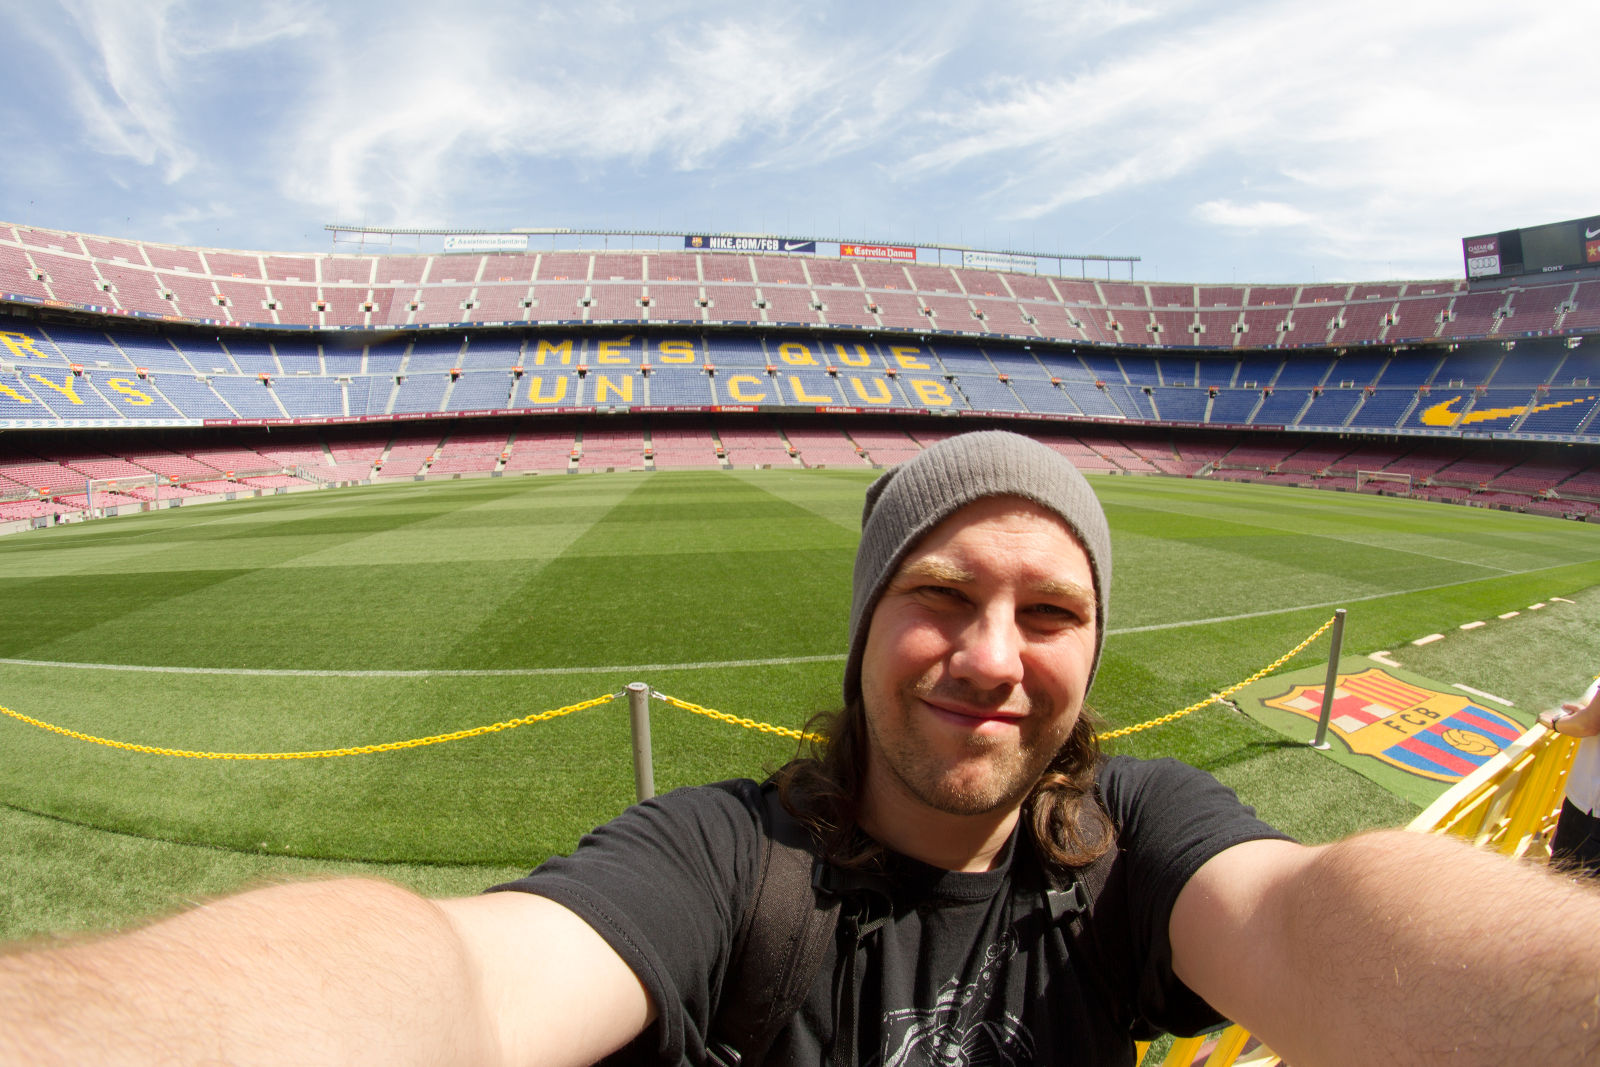 Willi im Camp Nou in Barcelona, Spanien